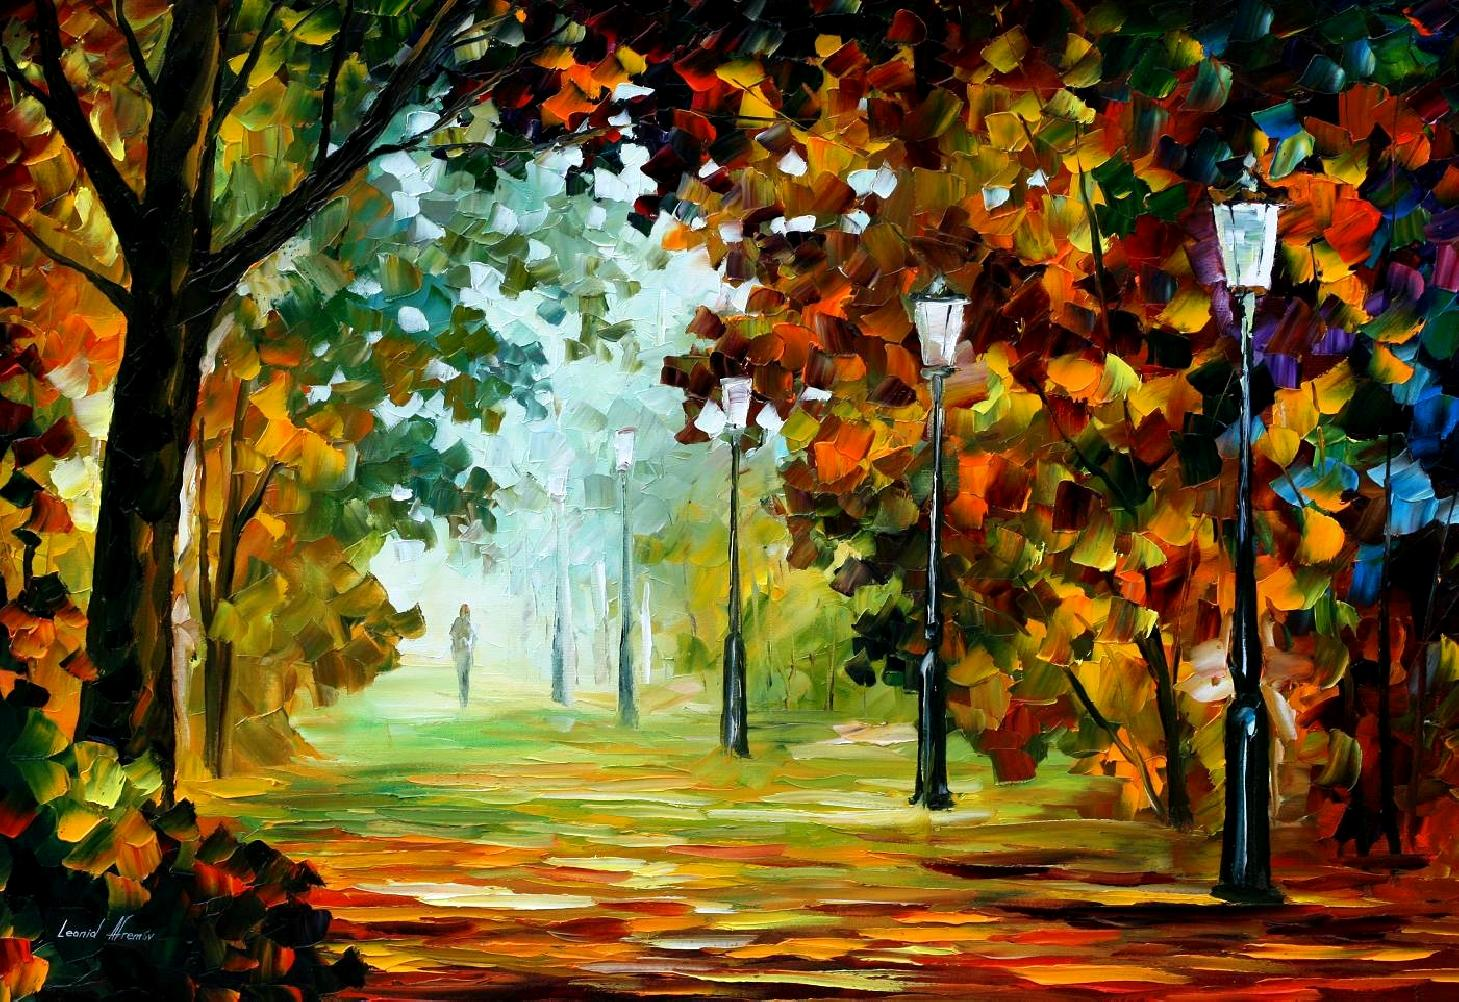 Morning Light 2 Palette Knife Oil Painting On Canvas By